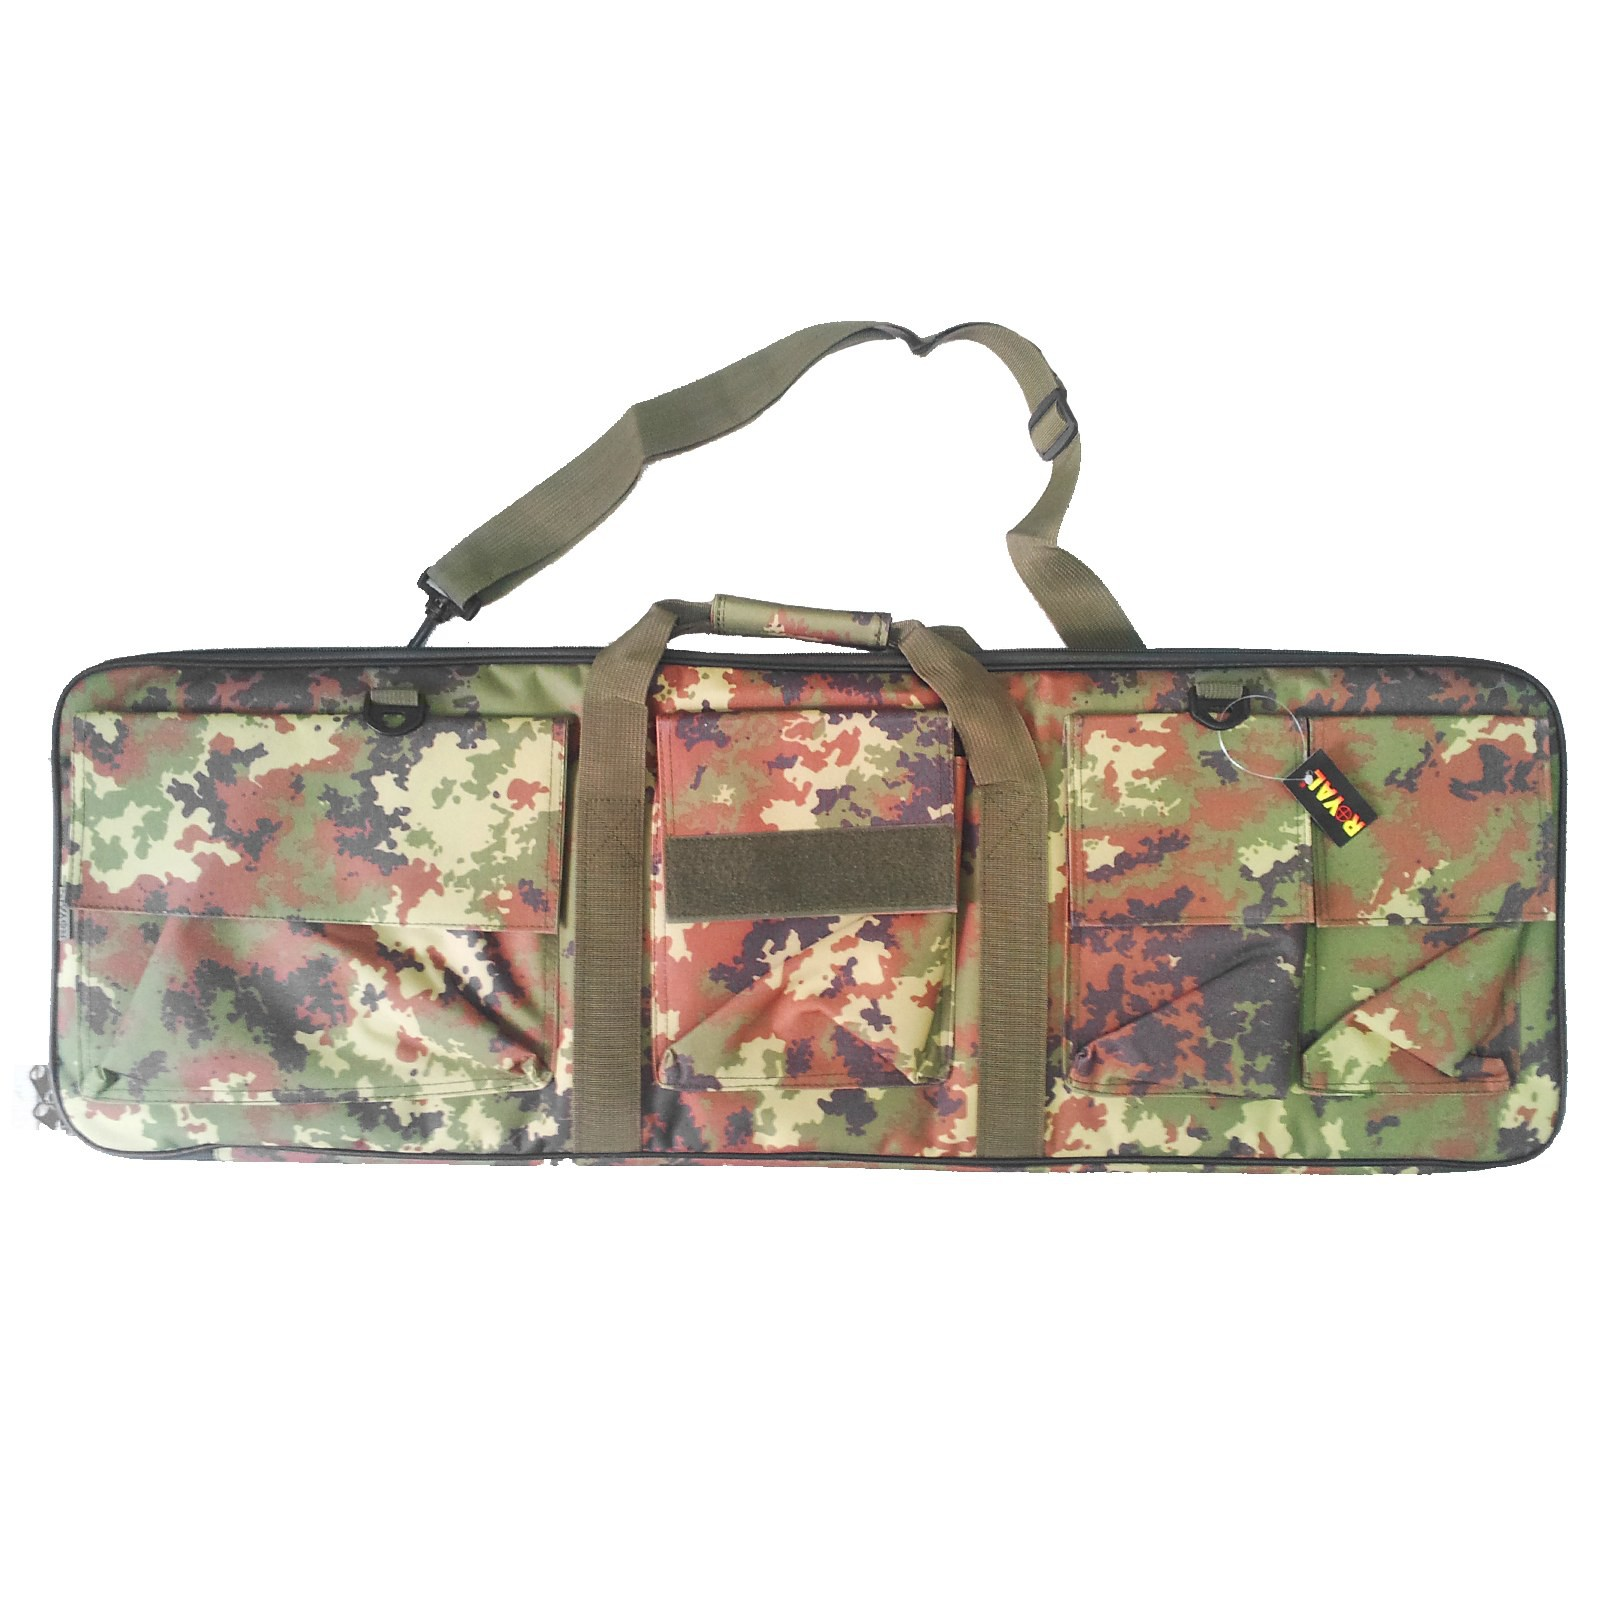 Sacca Custodia Borsa Porta Fucile da Softair 88 Cm in Cordura Vegetata